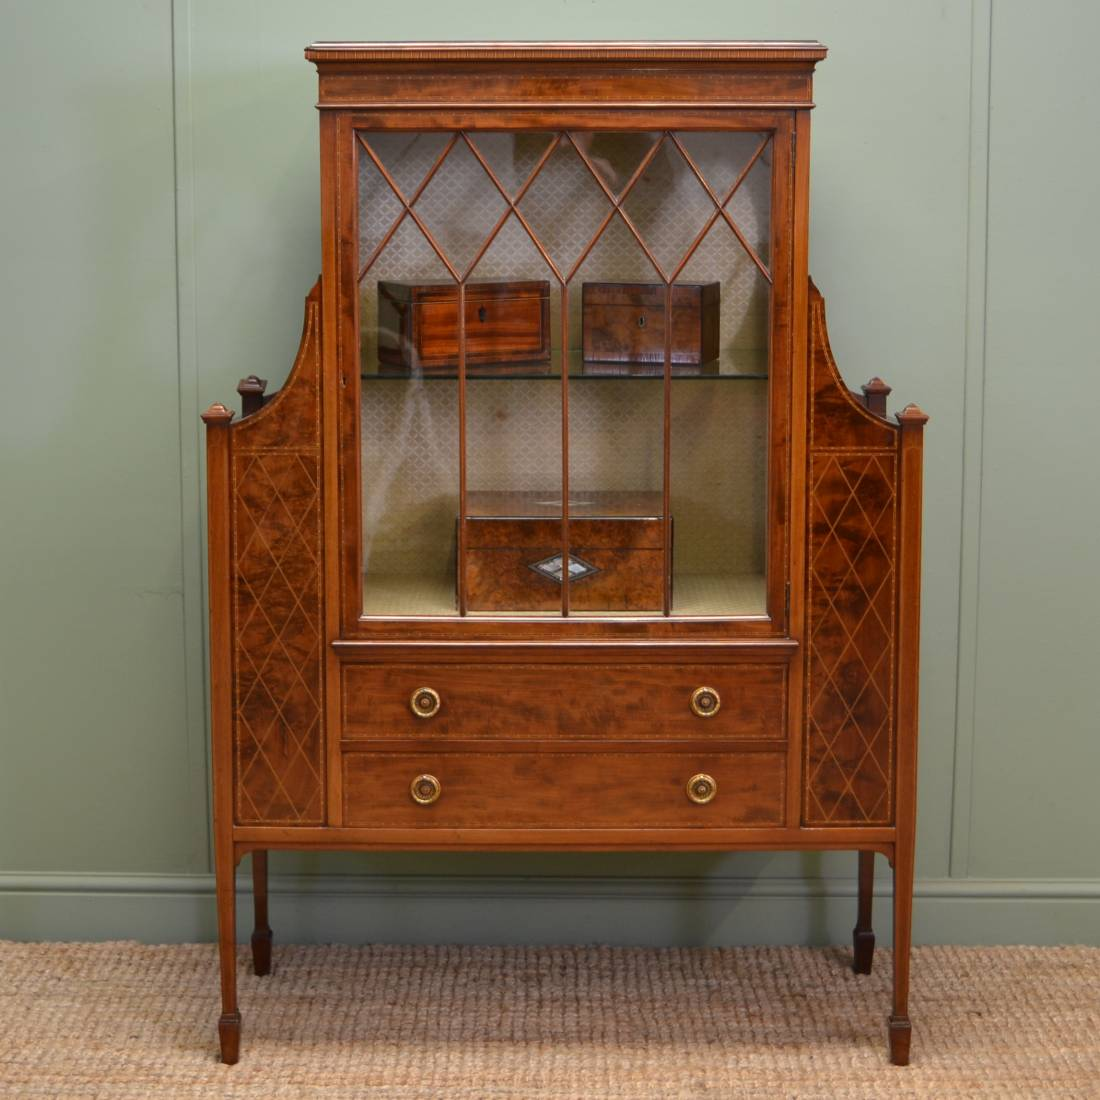 Magnificent Quality Gillows Victorian Mahogany Antique Display Cabinet